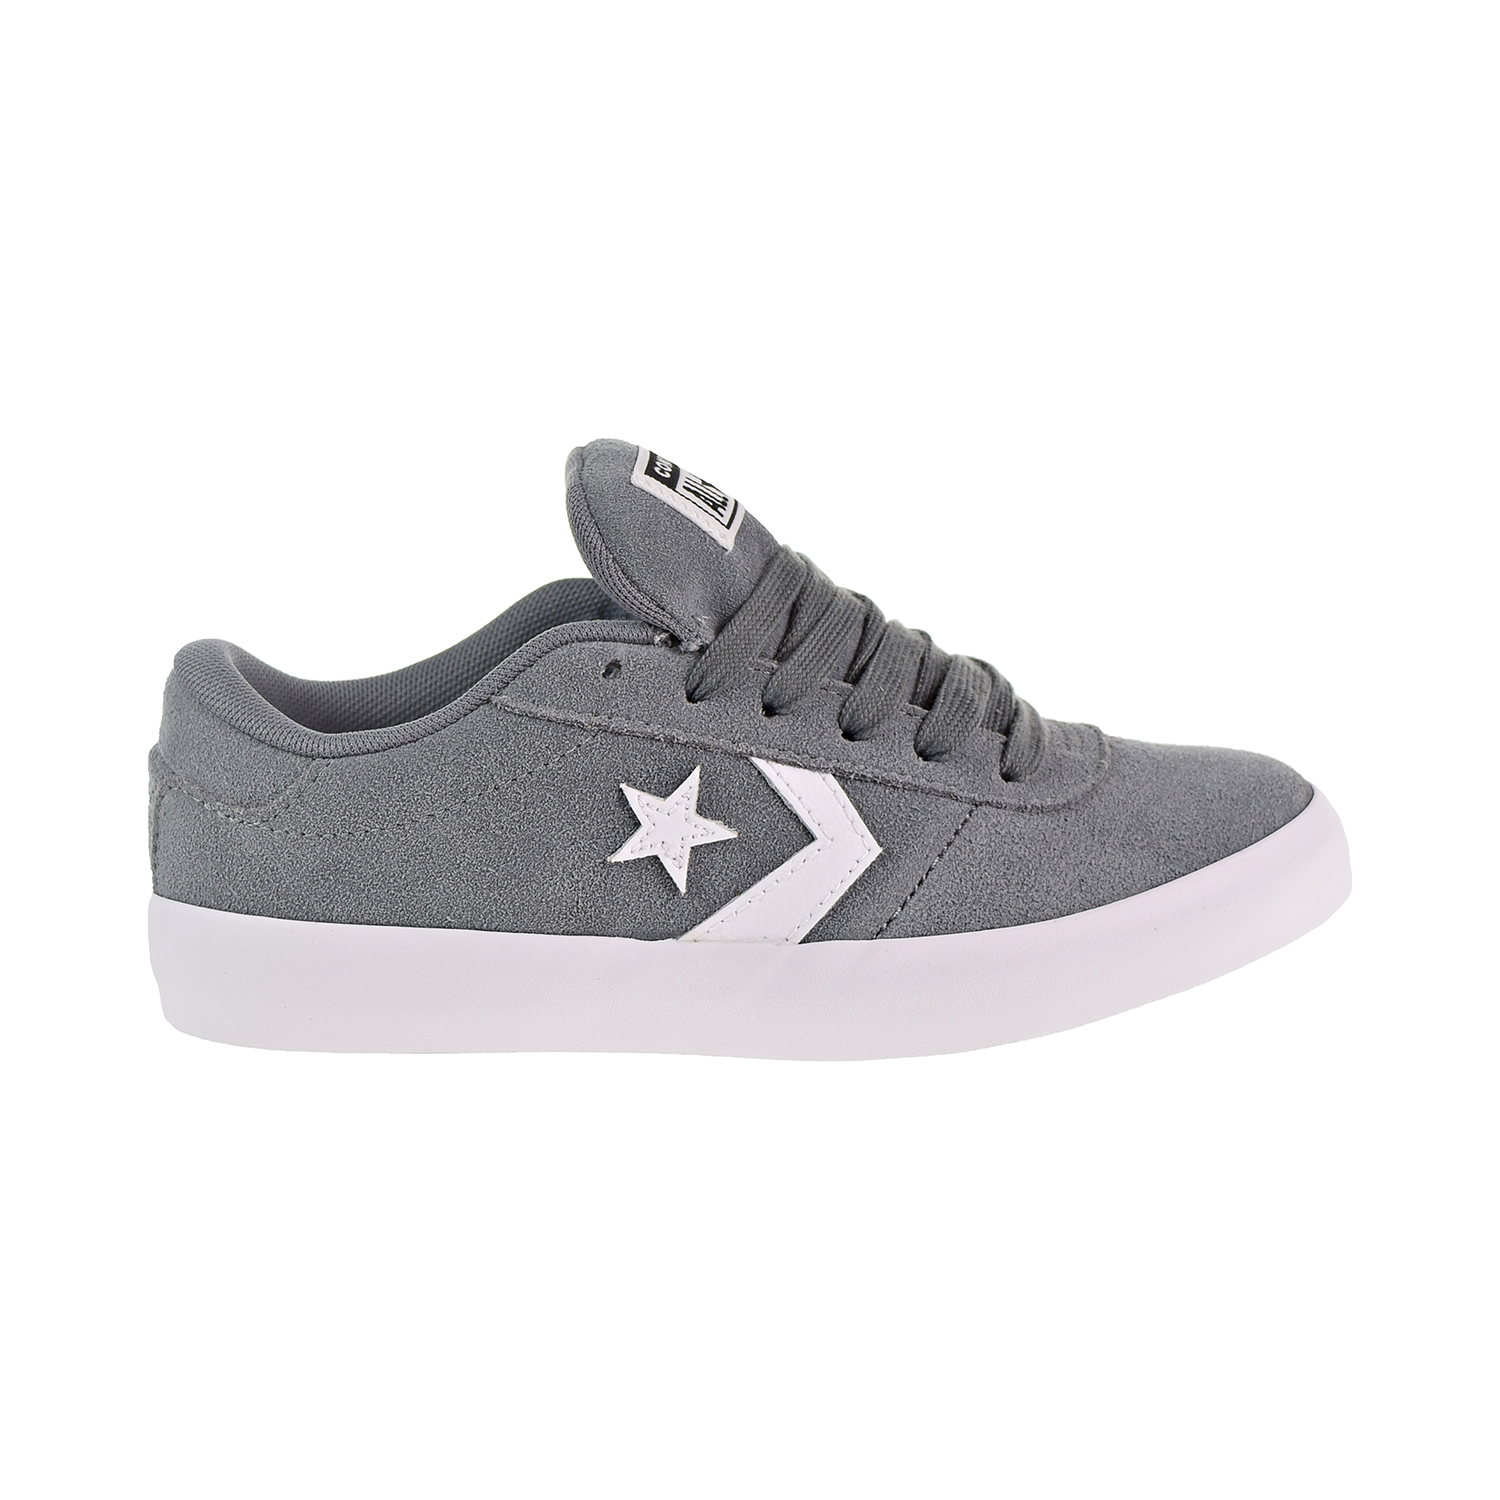 Converse Point Star Ox Women's Shoes